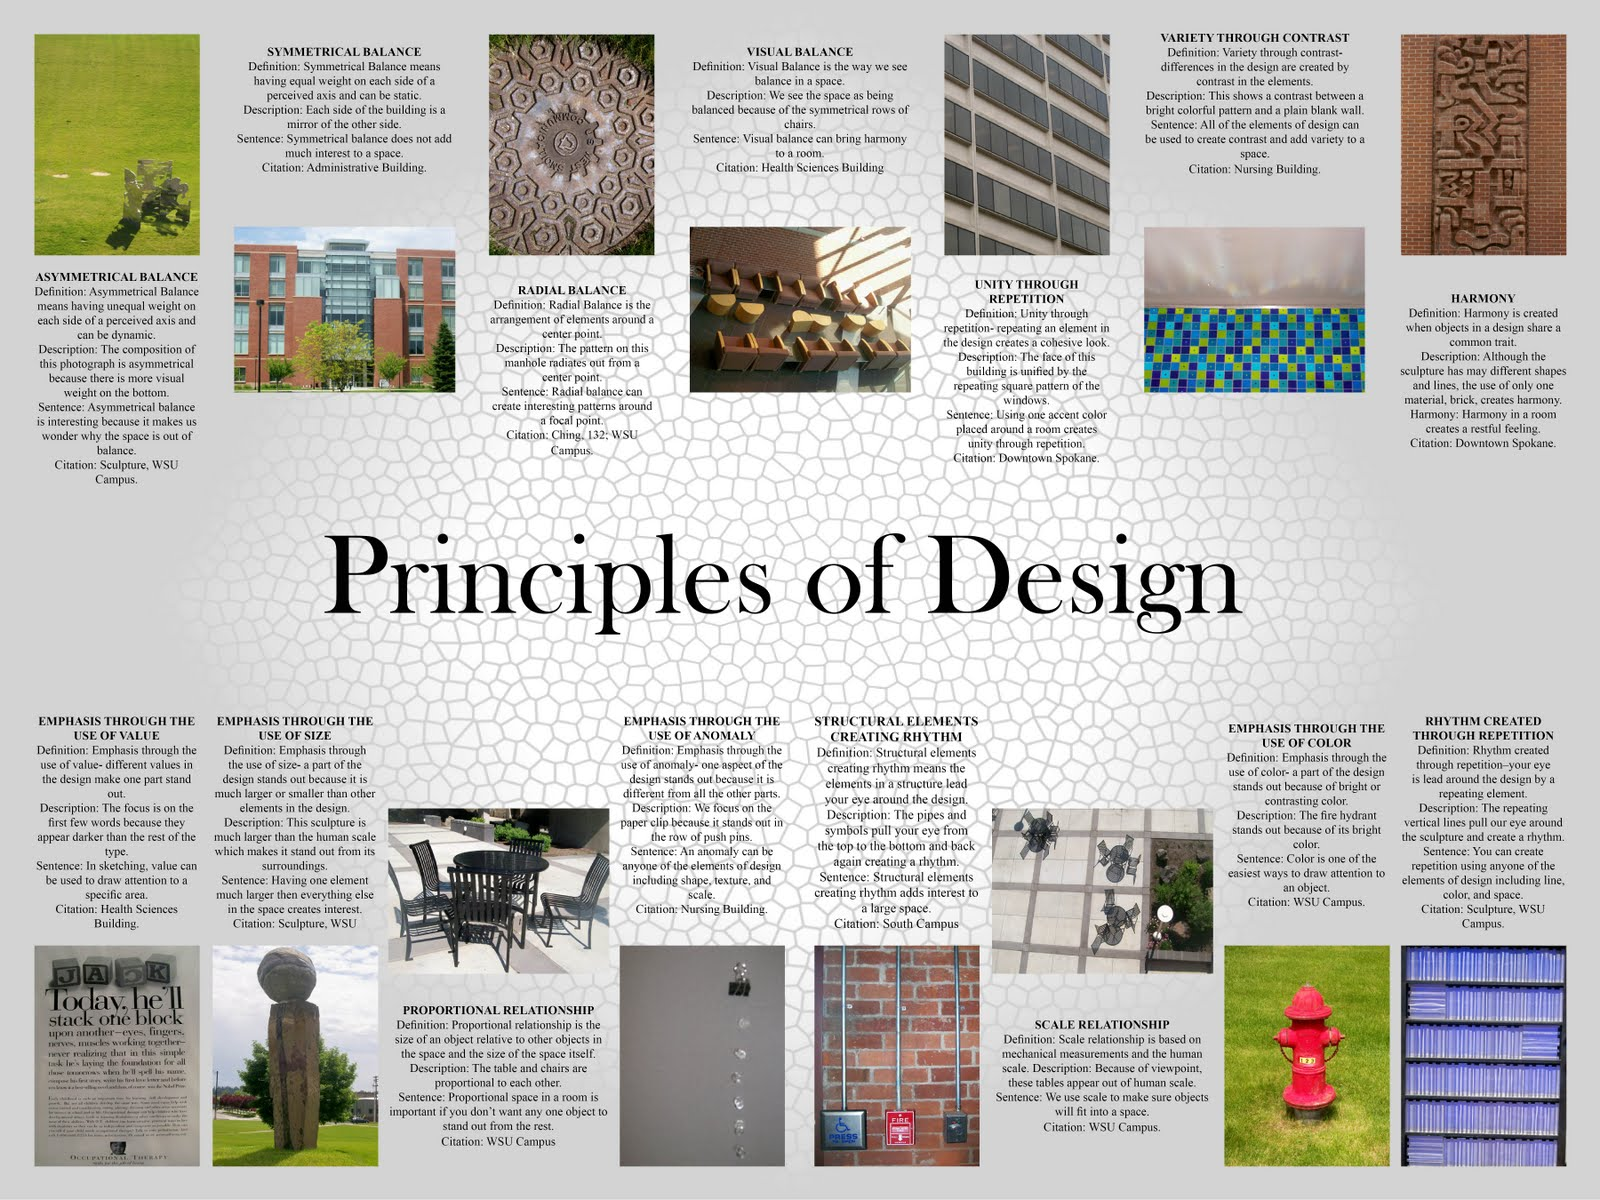 The Elements And Principles Of Design : Shannon stewart elements and principles of design